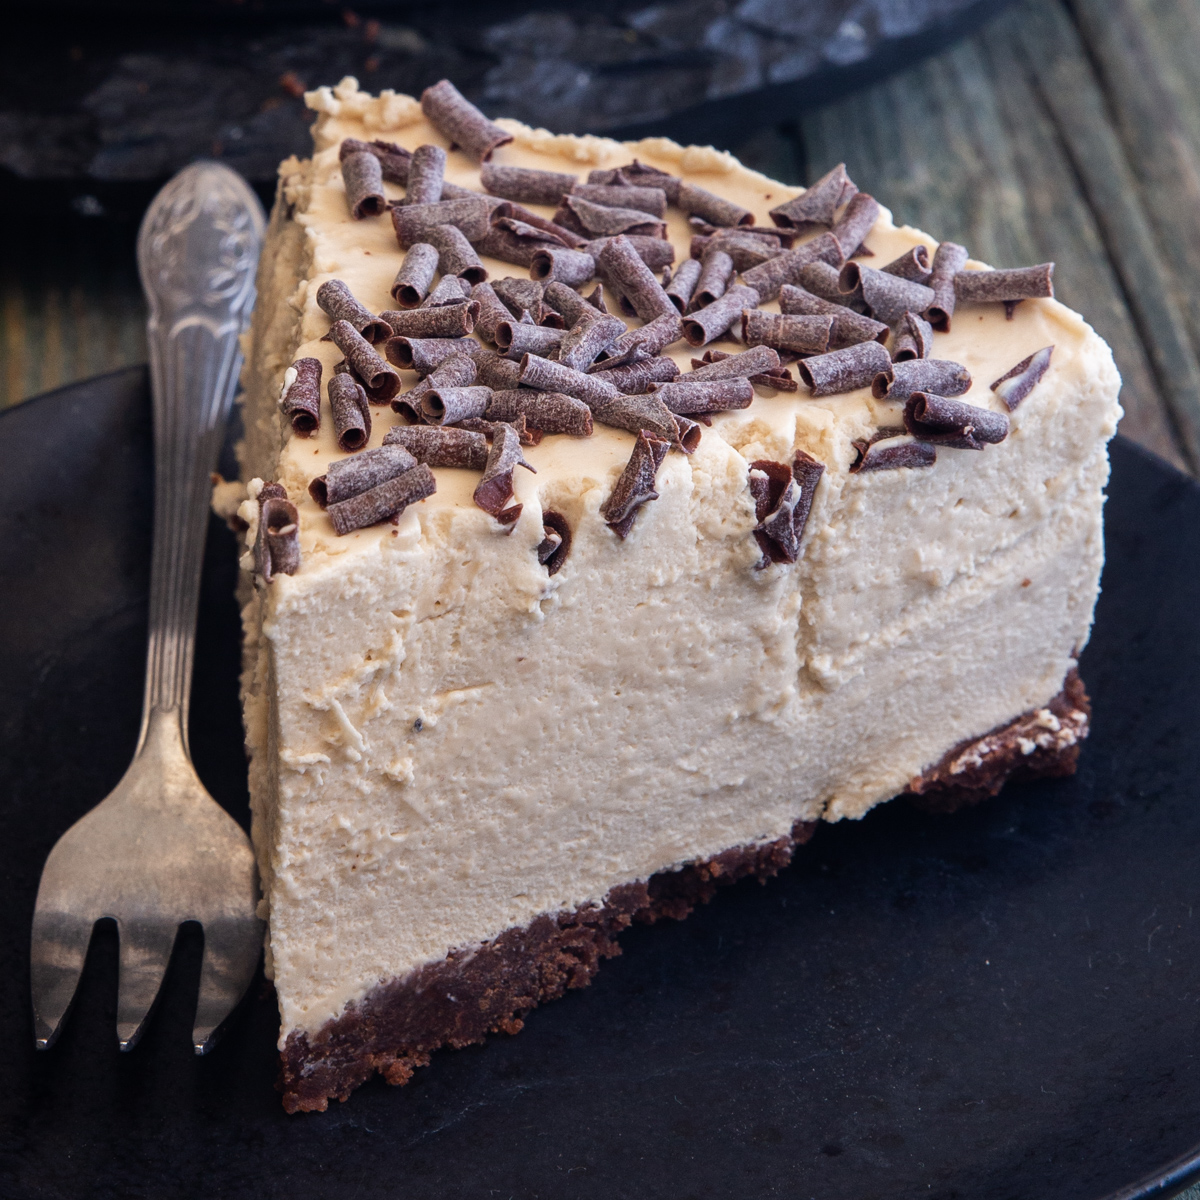 a slice of coffee cheesecake on a black plate with a fork.